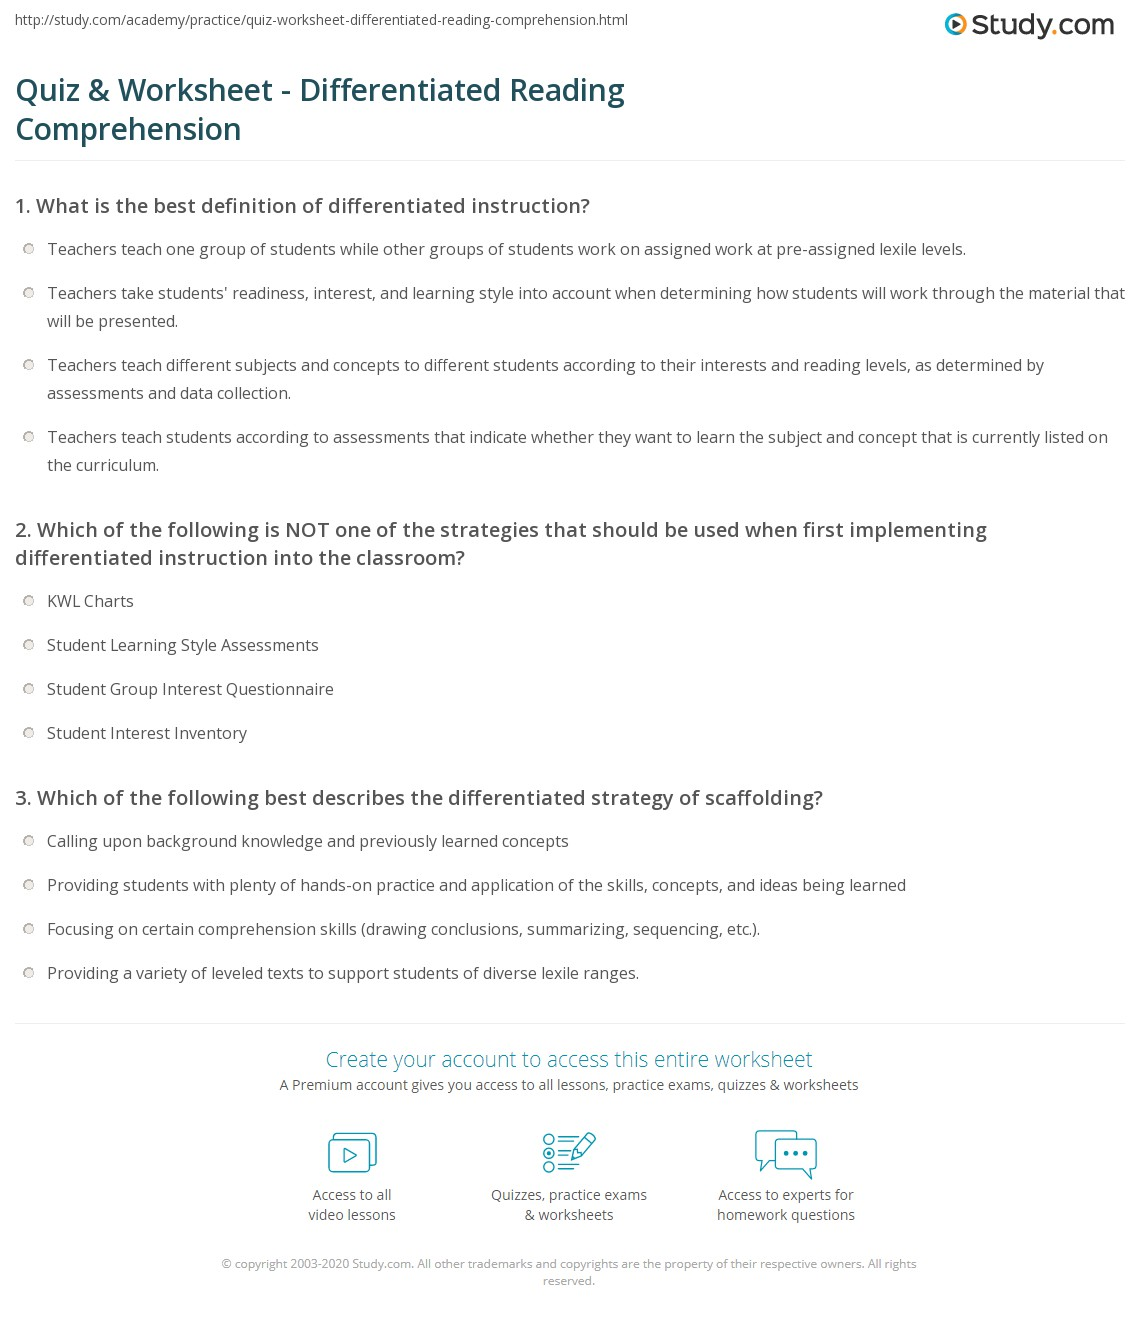 Quiz & Worksheet - Differentiated Reading Comprehension | Study.com